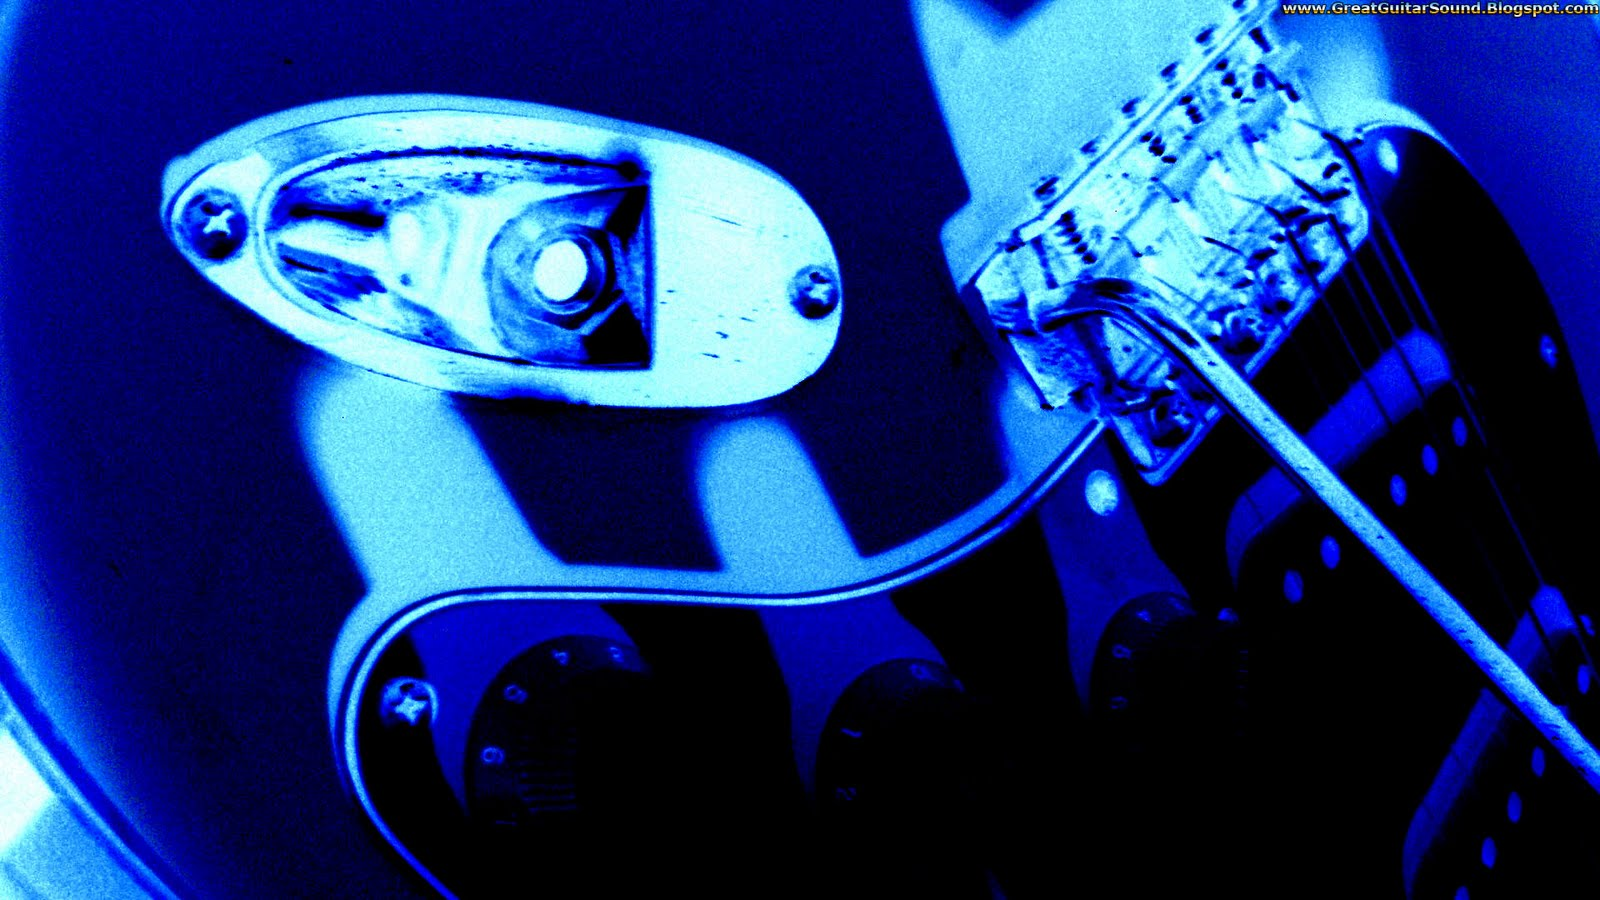 Guitar    Blue Effect Fender Stratocaster Electric Guitar HD Wallpaper